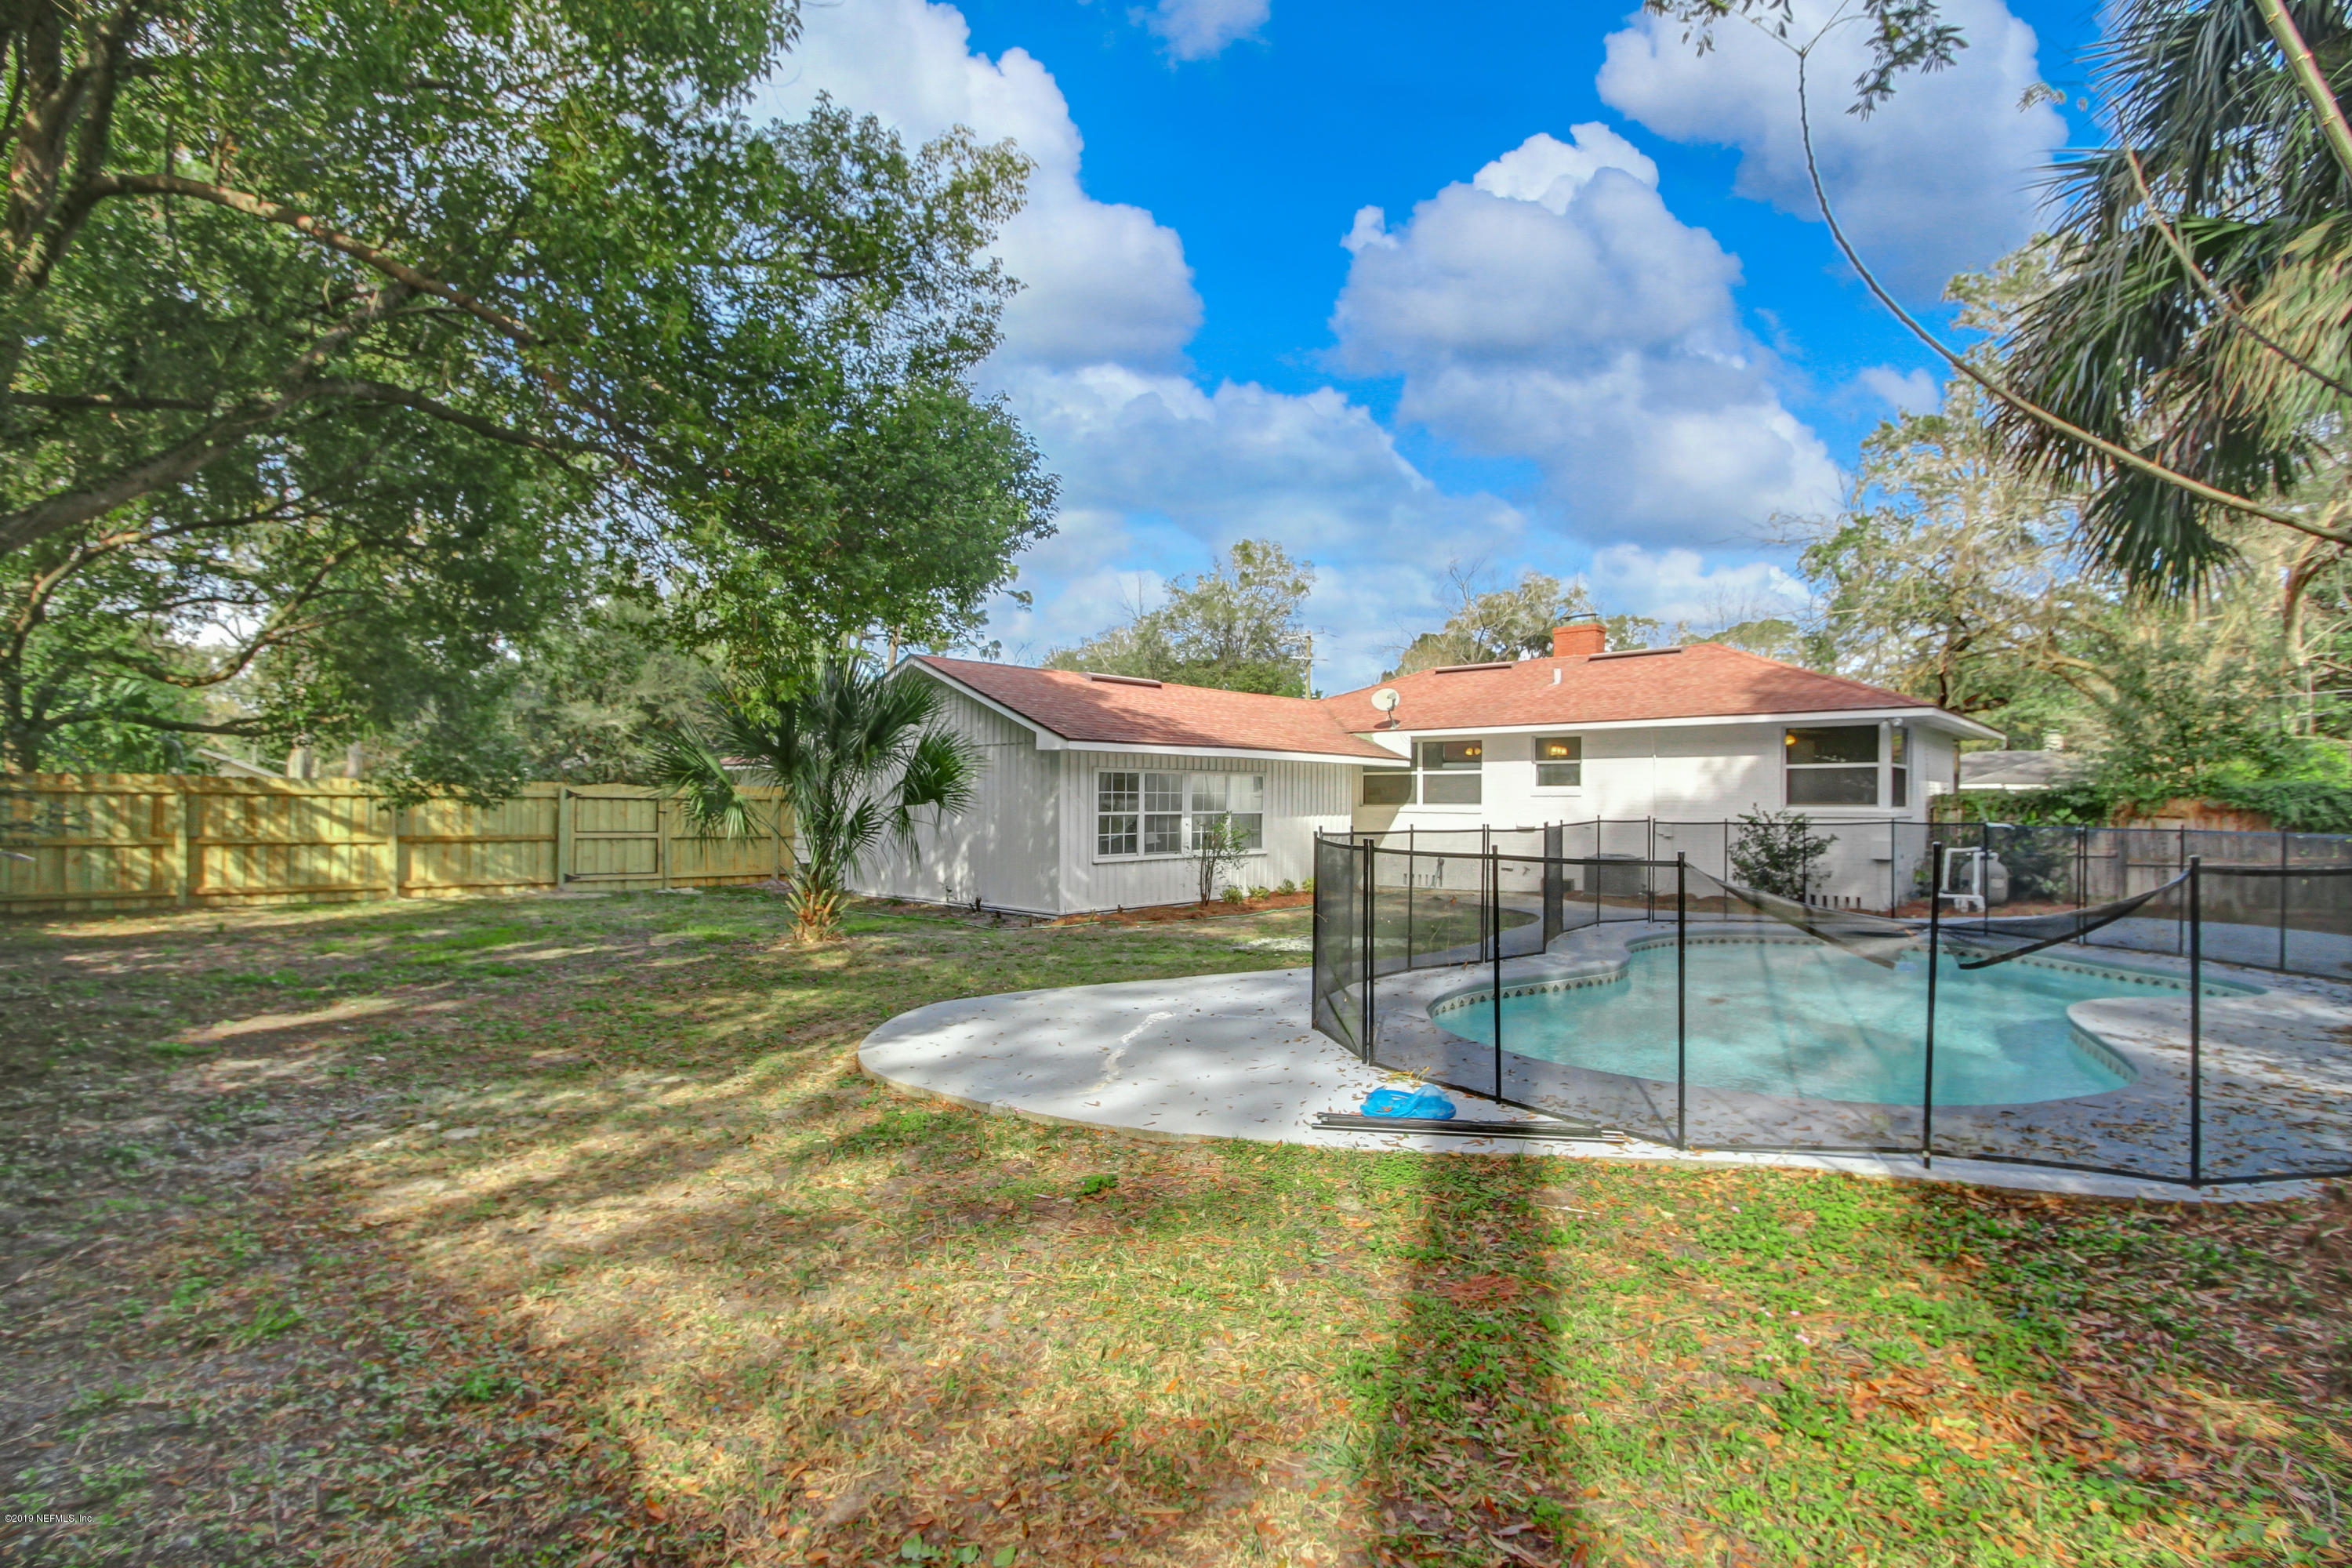 4508 ROSEWOOD, JACKSONVILLE, FLORIDA 32207, 4 Bedrooms Bedrooms, ,2 BathroomsBathrooms,Residential - single family,For sale,ROSEWOOD,979892